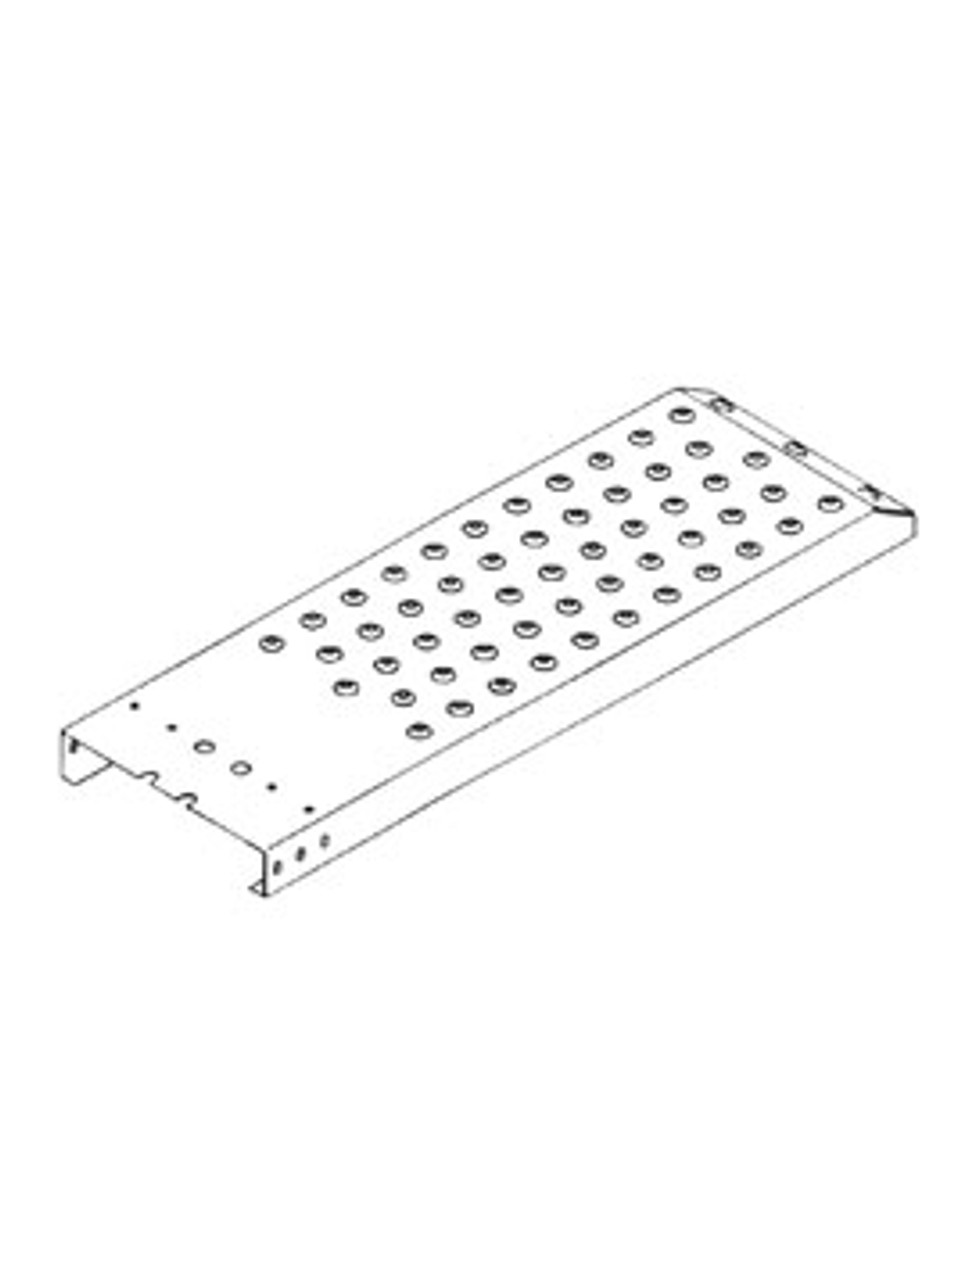 07092X --- Replacement Ramp for Croft Tow Dolly